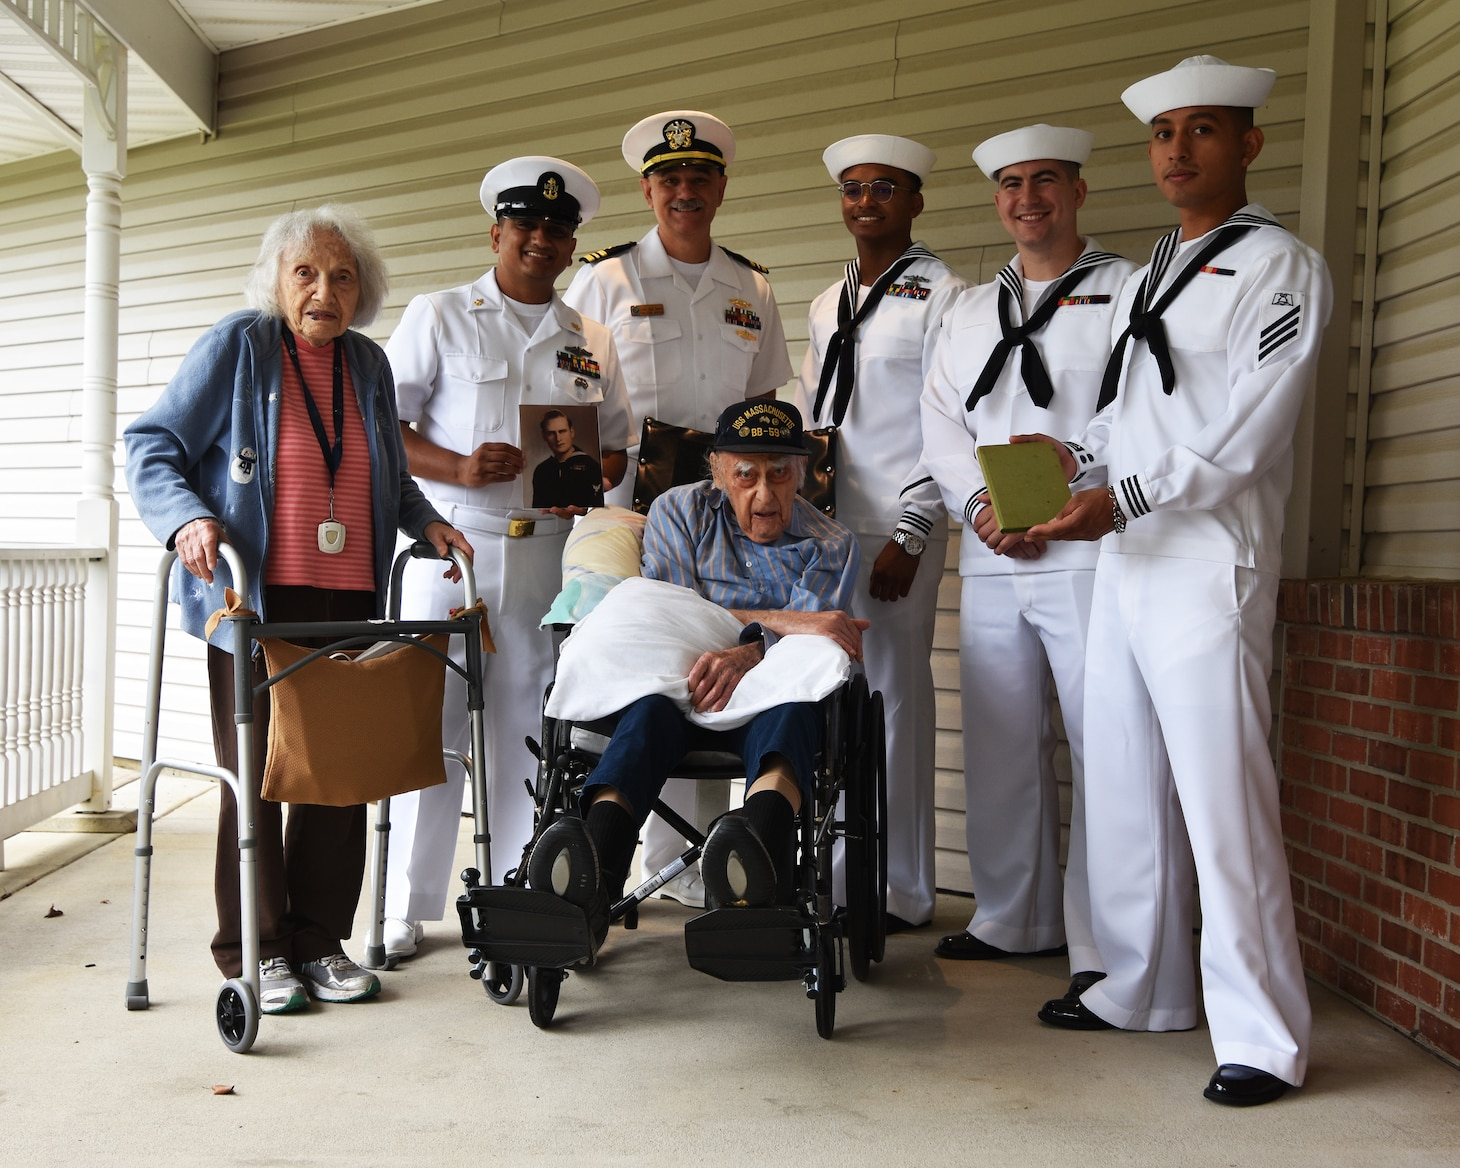 Sailors assigned to the future Virginia-class submarine PCU Massachusetts (SSN 798) stand World War II Veteran Baker 2nd Class Phil Dorf and his wife Etta during a visit July 2nd in Freehold New Jersey.